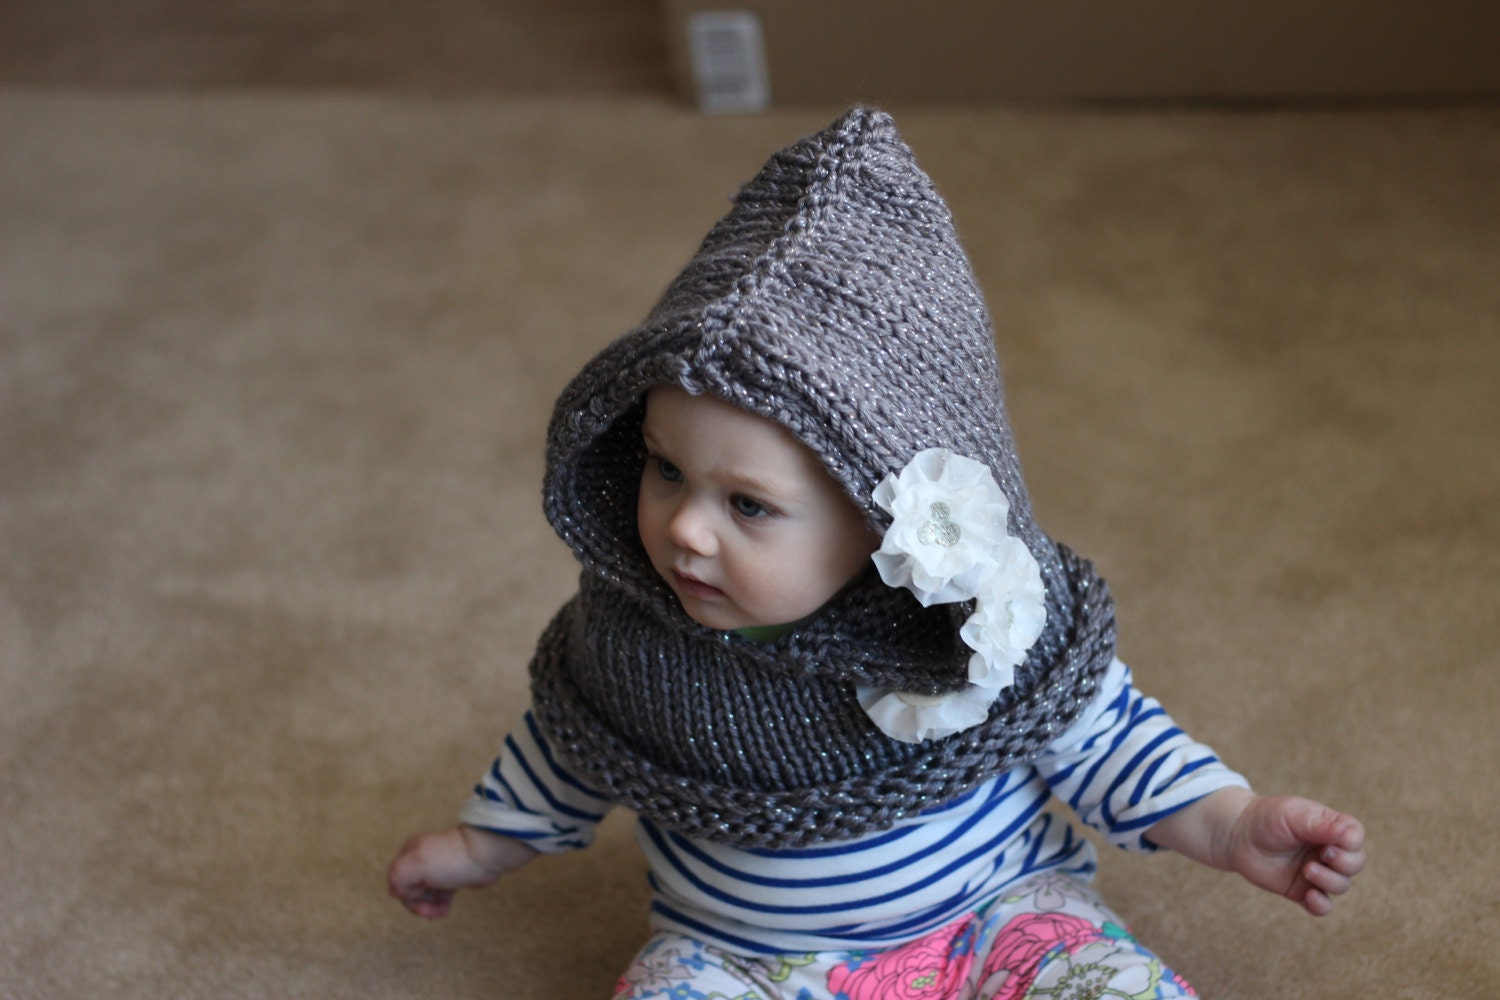 Knitted baby hooded cowl with white lace flowers by KoalaBelle